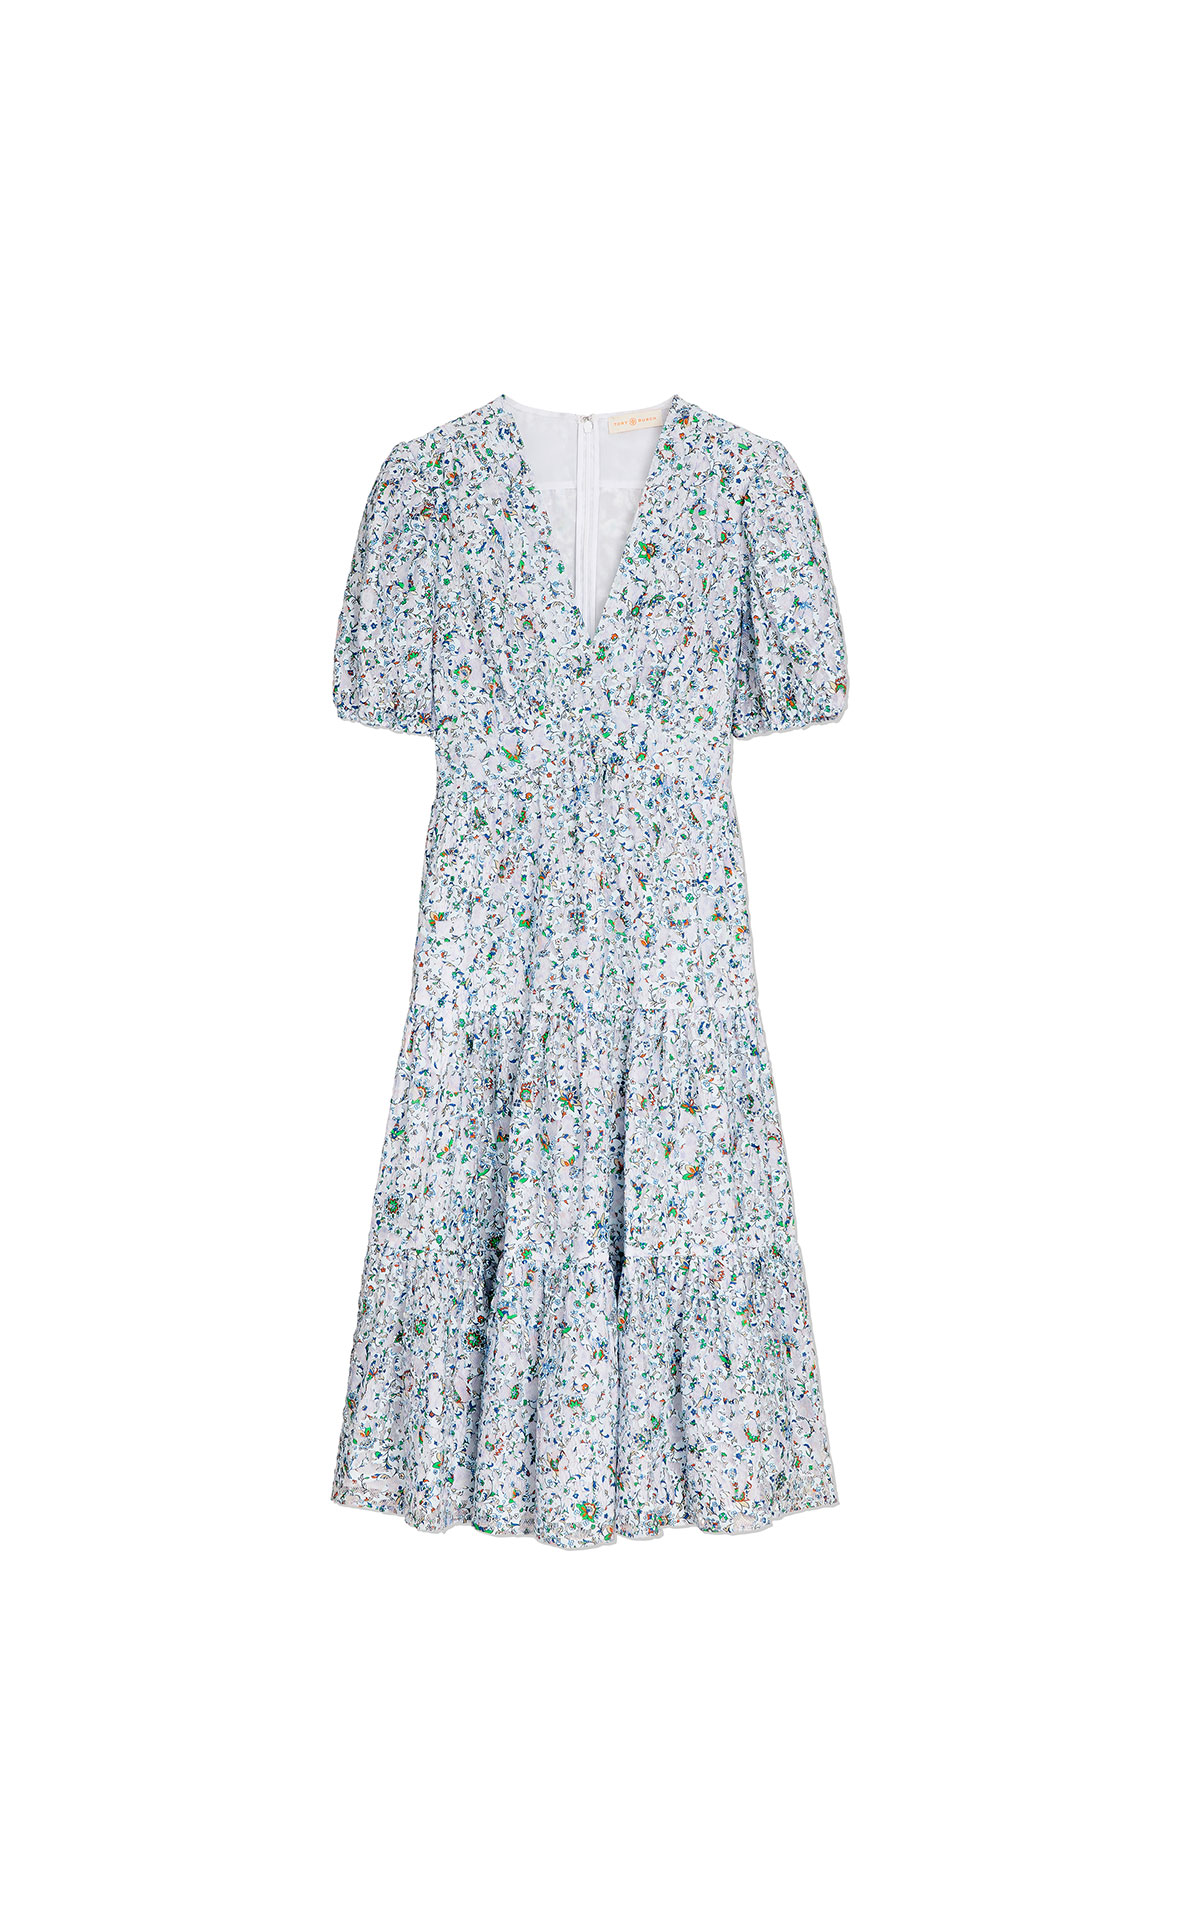 Tory Burch Printed lace dress from Bicester Village